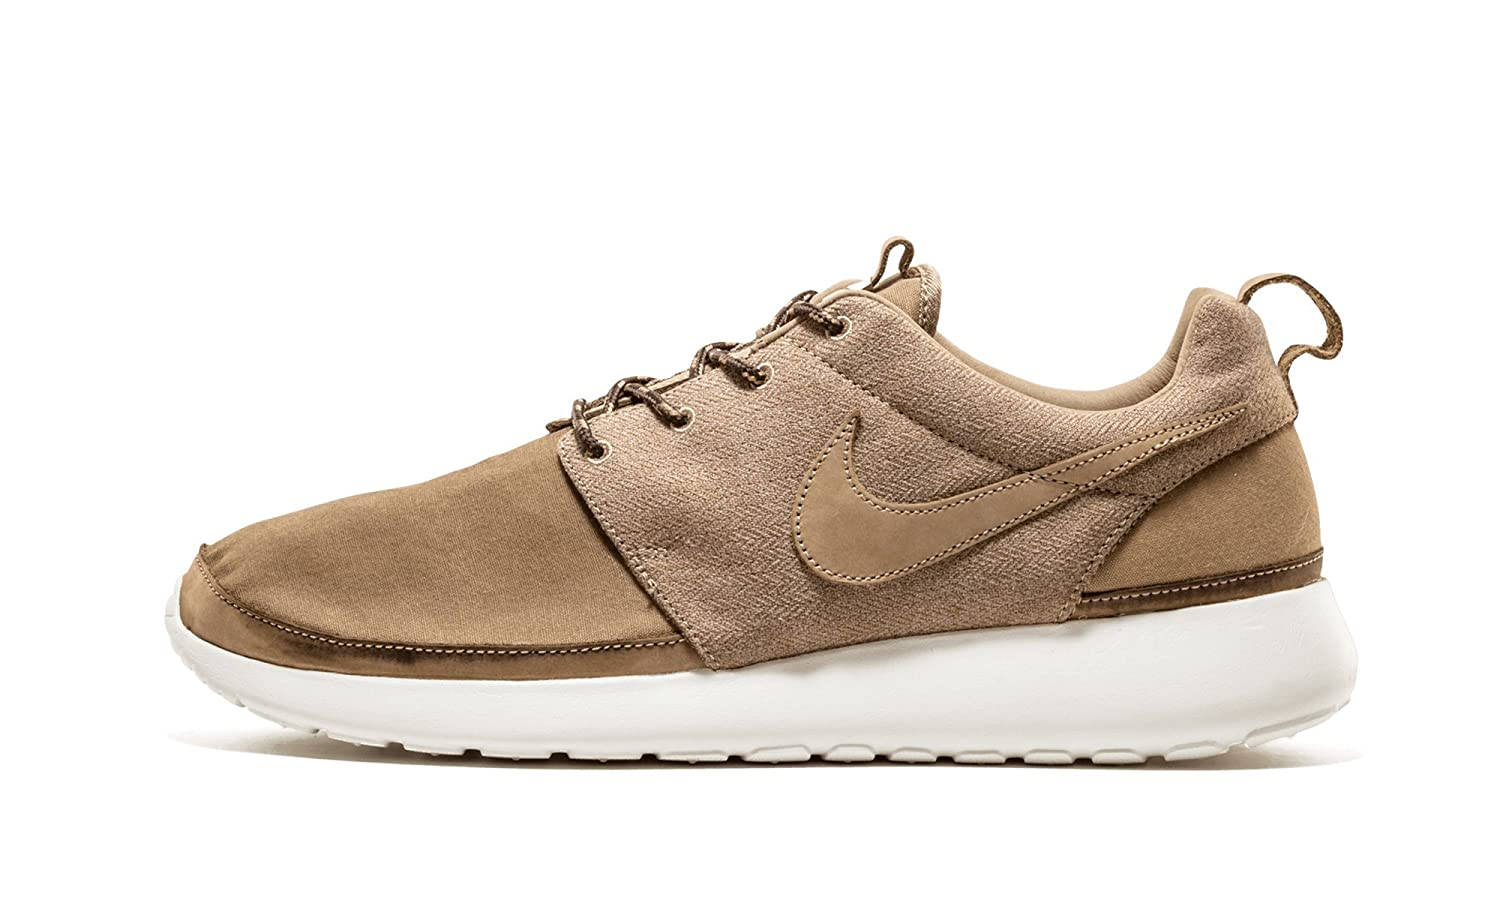 watch a9c05 0e194 Amazon.com   NIKE Roshe Run RPM NRG Khaki Sail (580566-220) (11 D(M) US)    Fashion Sneakers